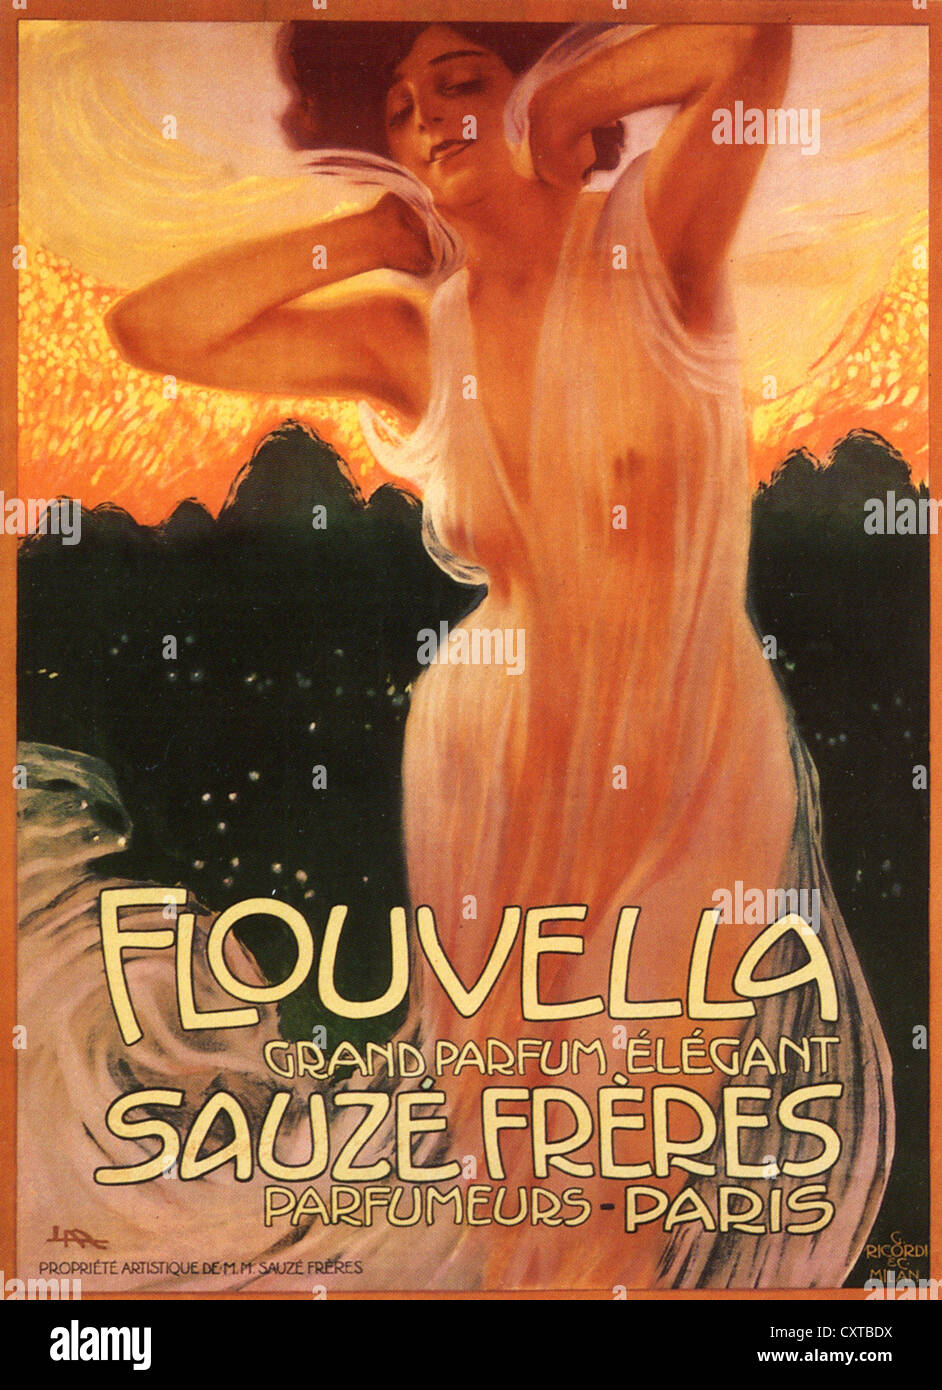 SAUZE FRERES Poster for 1910 perfume Flouvella produced by the Paris brothers whose company lasted until 1953. - Stock Image